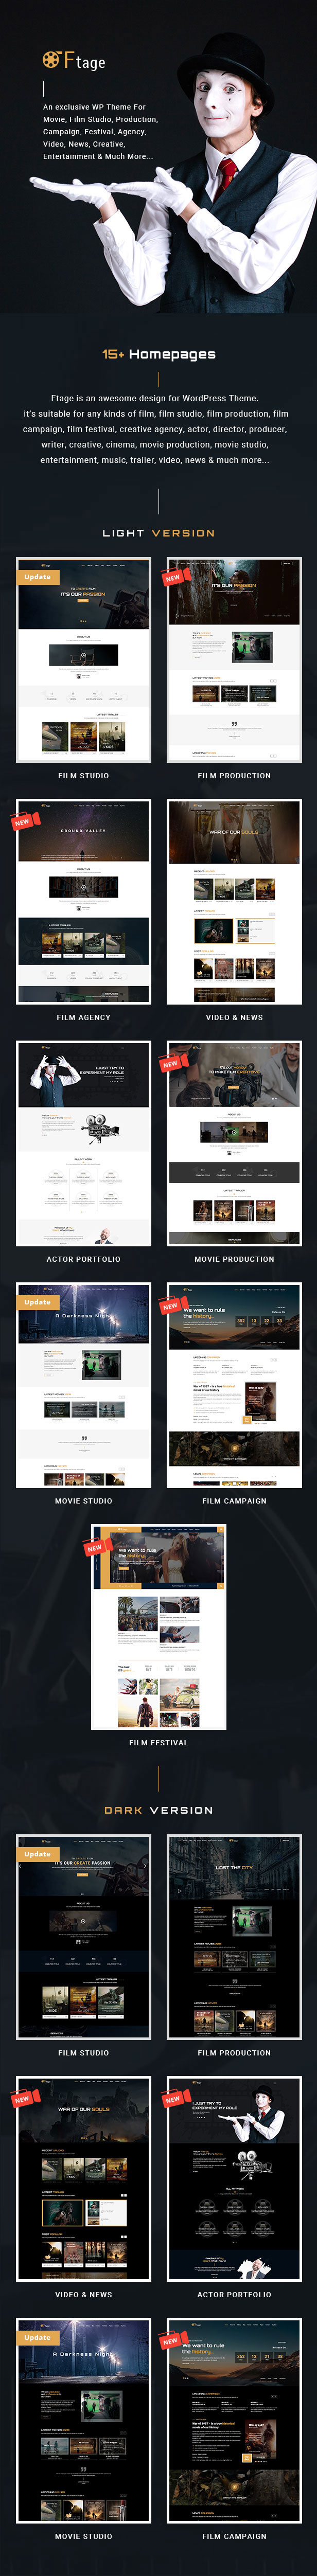 Movie Production & Film Studio WordPress Theme - Ftage - 1